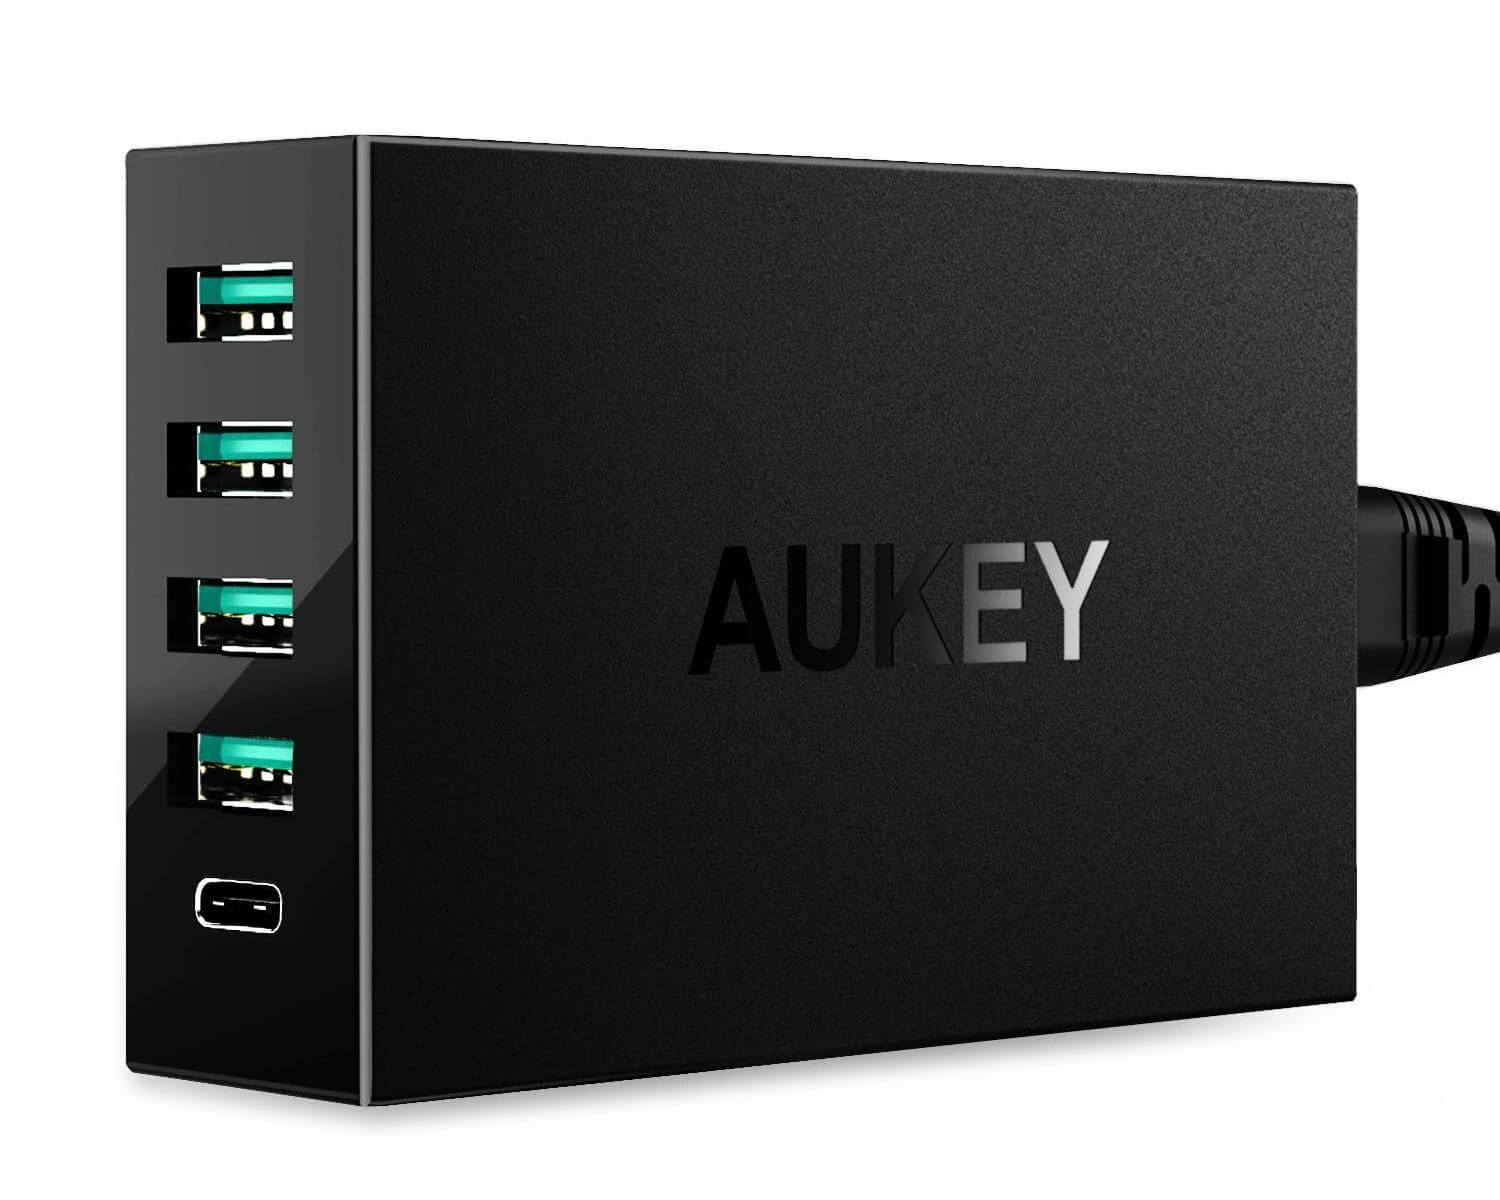 AUKEY AMP USB Charger